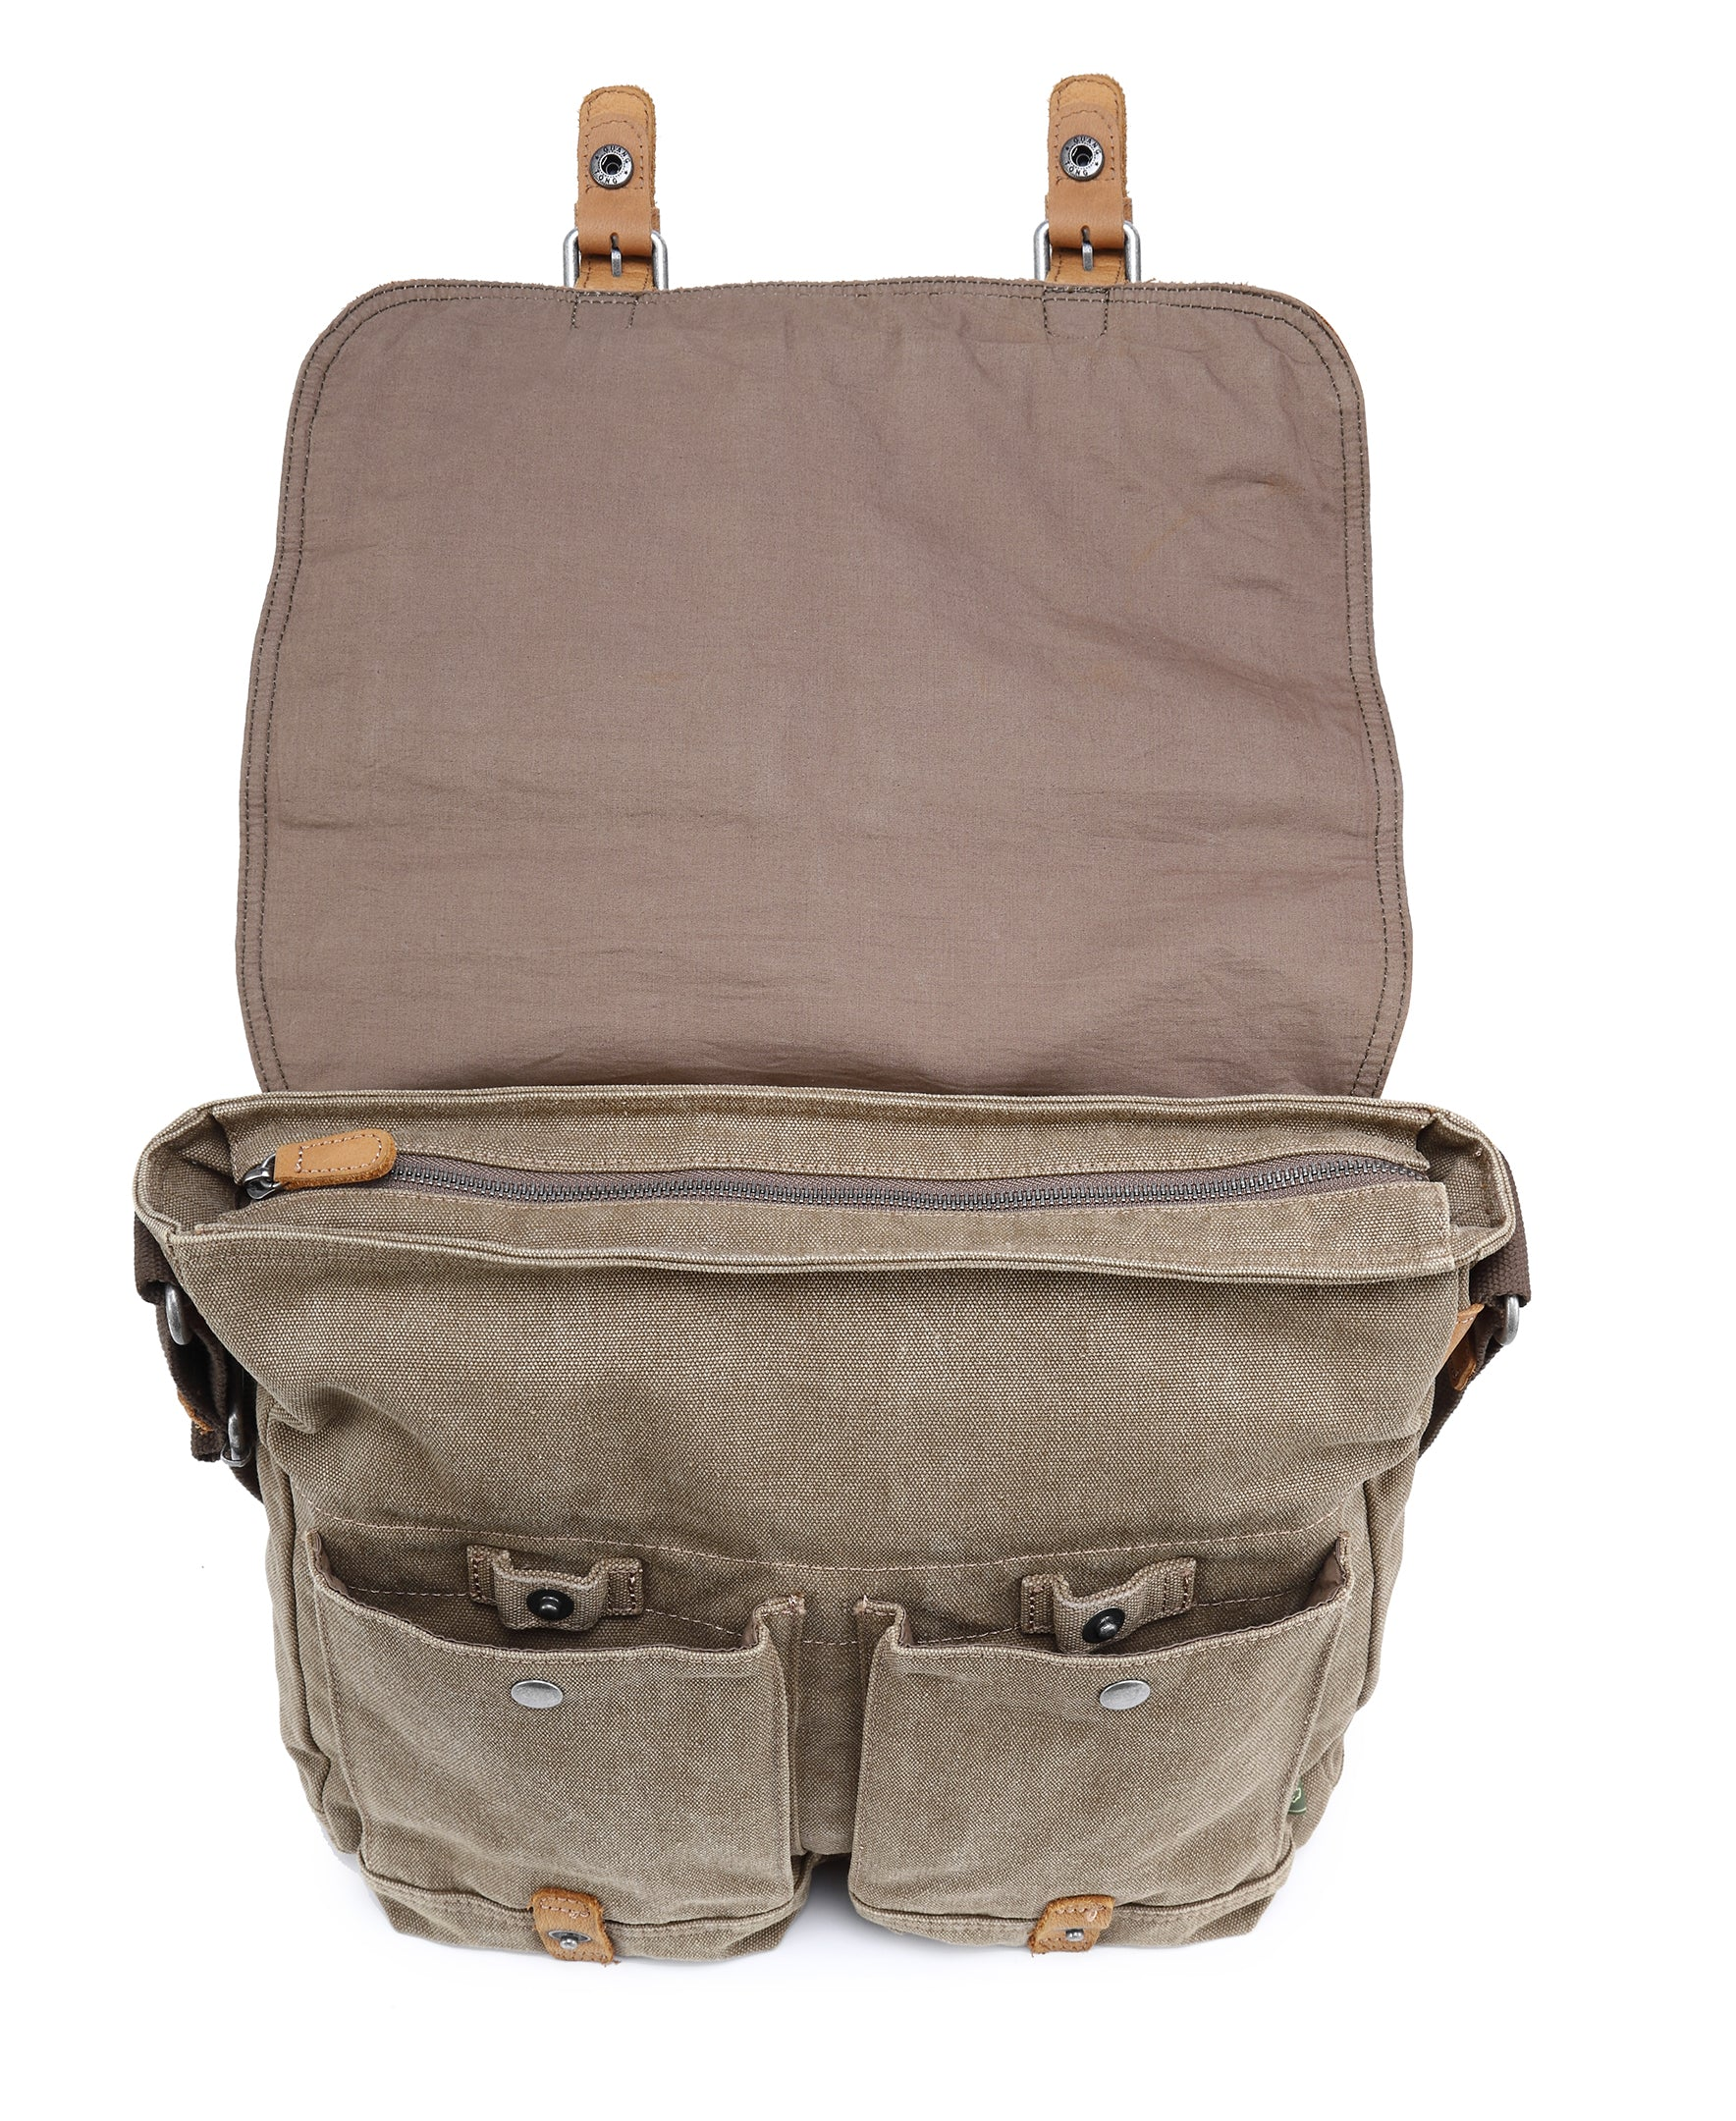 Valley River Canvas Messenger Bag